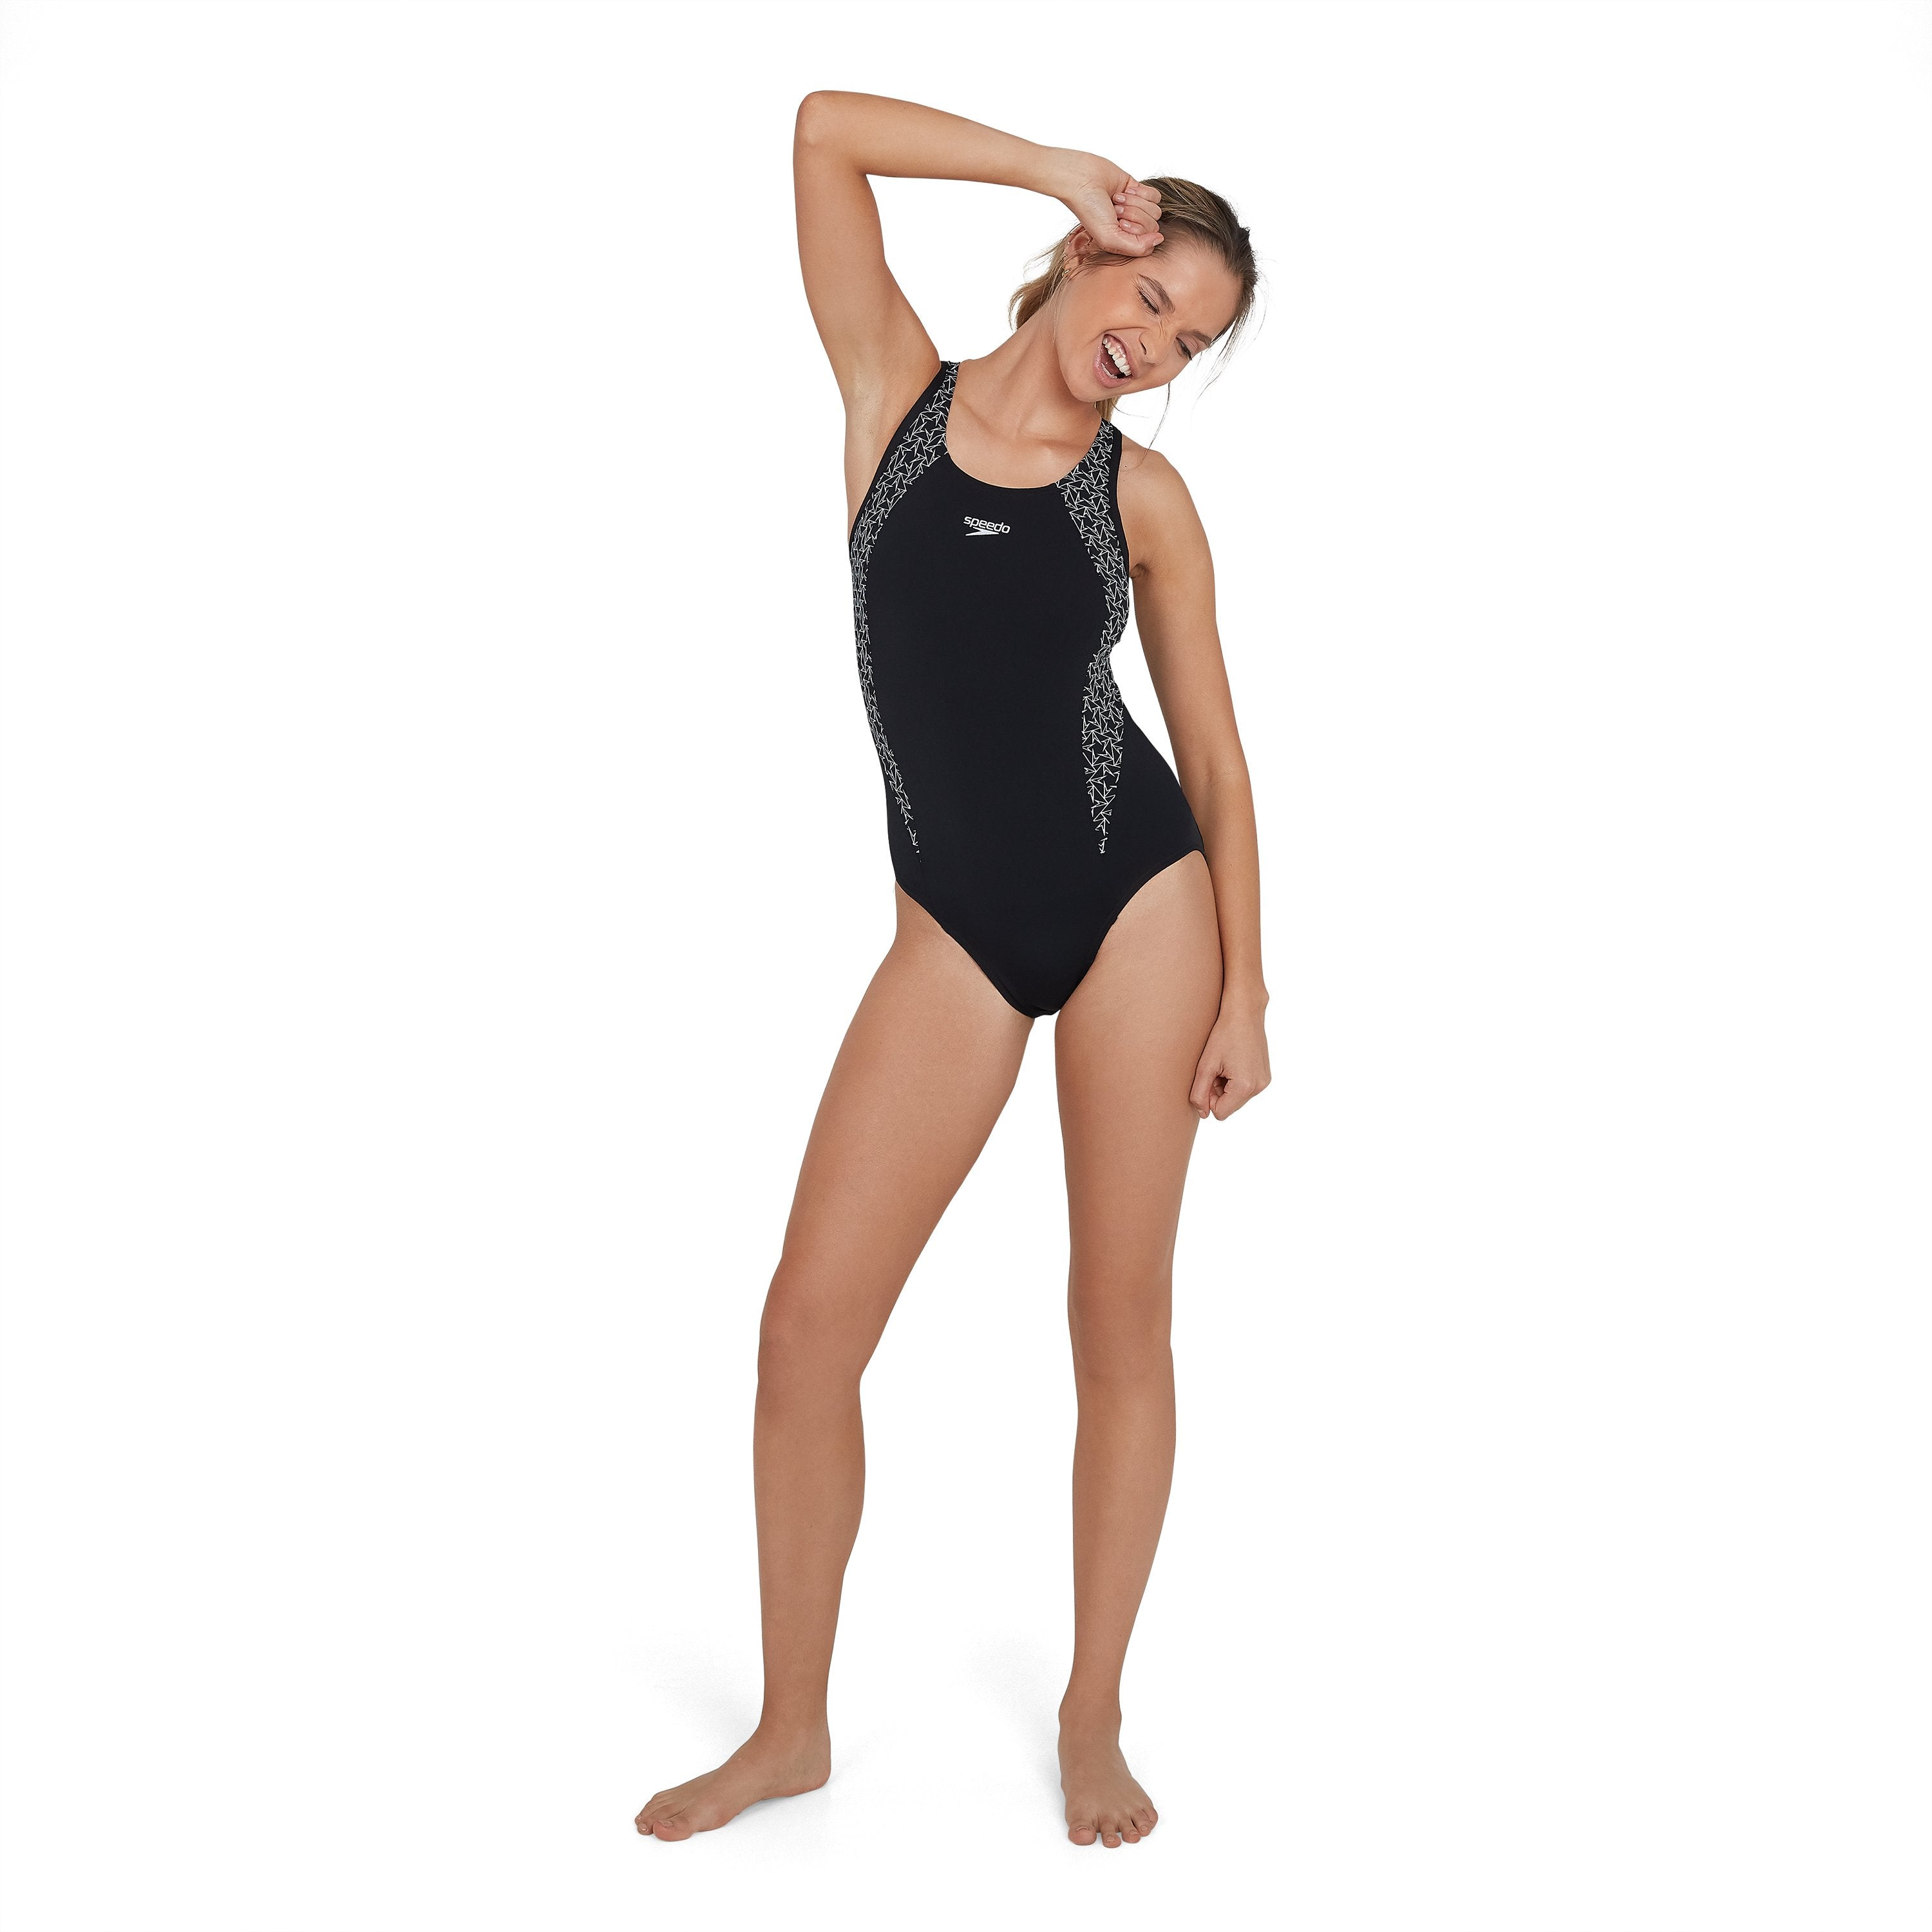 Boomstar Splice Flyback Swimsuit Zwart - Wit | Speedo (5353720414371)